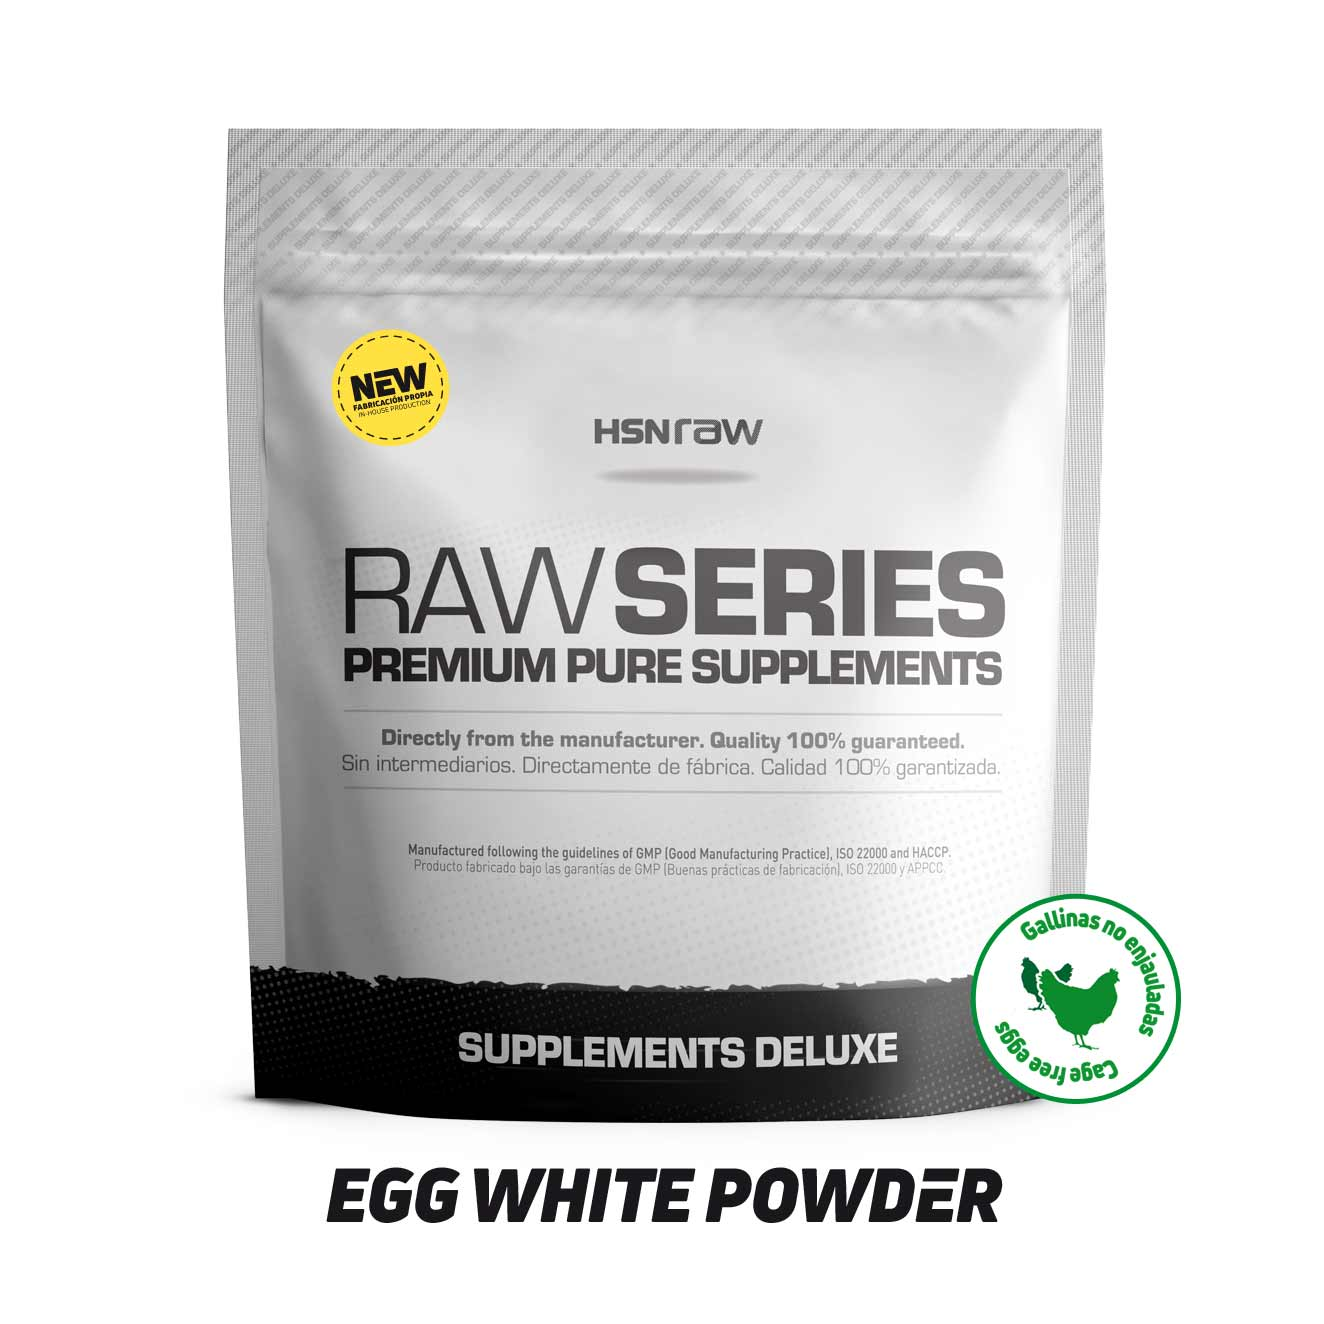 Buy Egg White by HSNraw